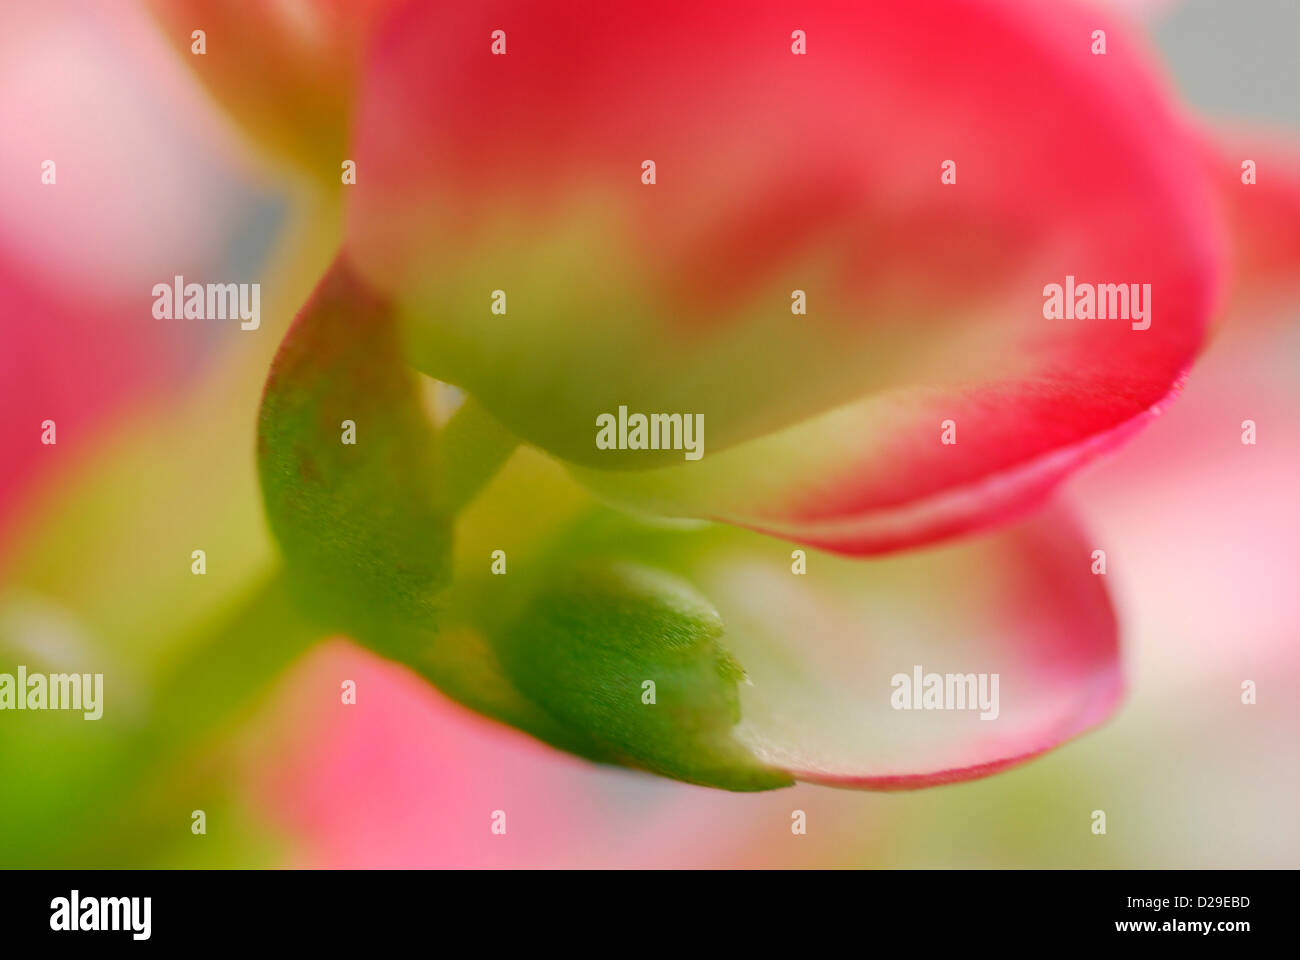 Begonia Flowers in Soft Light - Stock Image